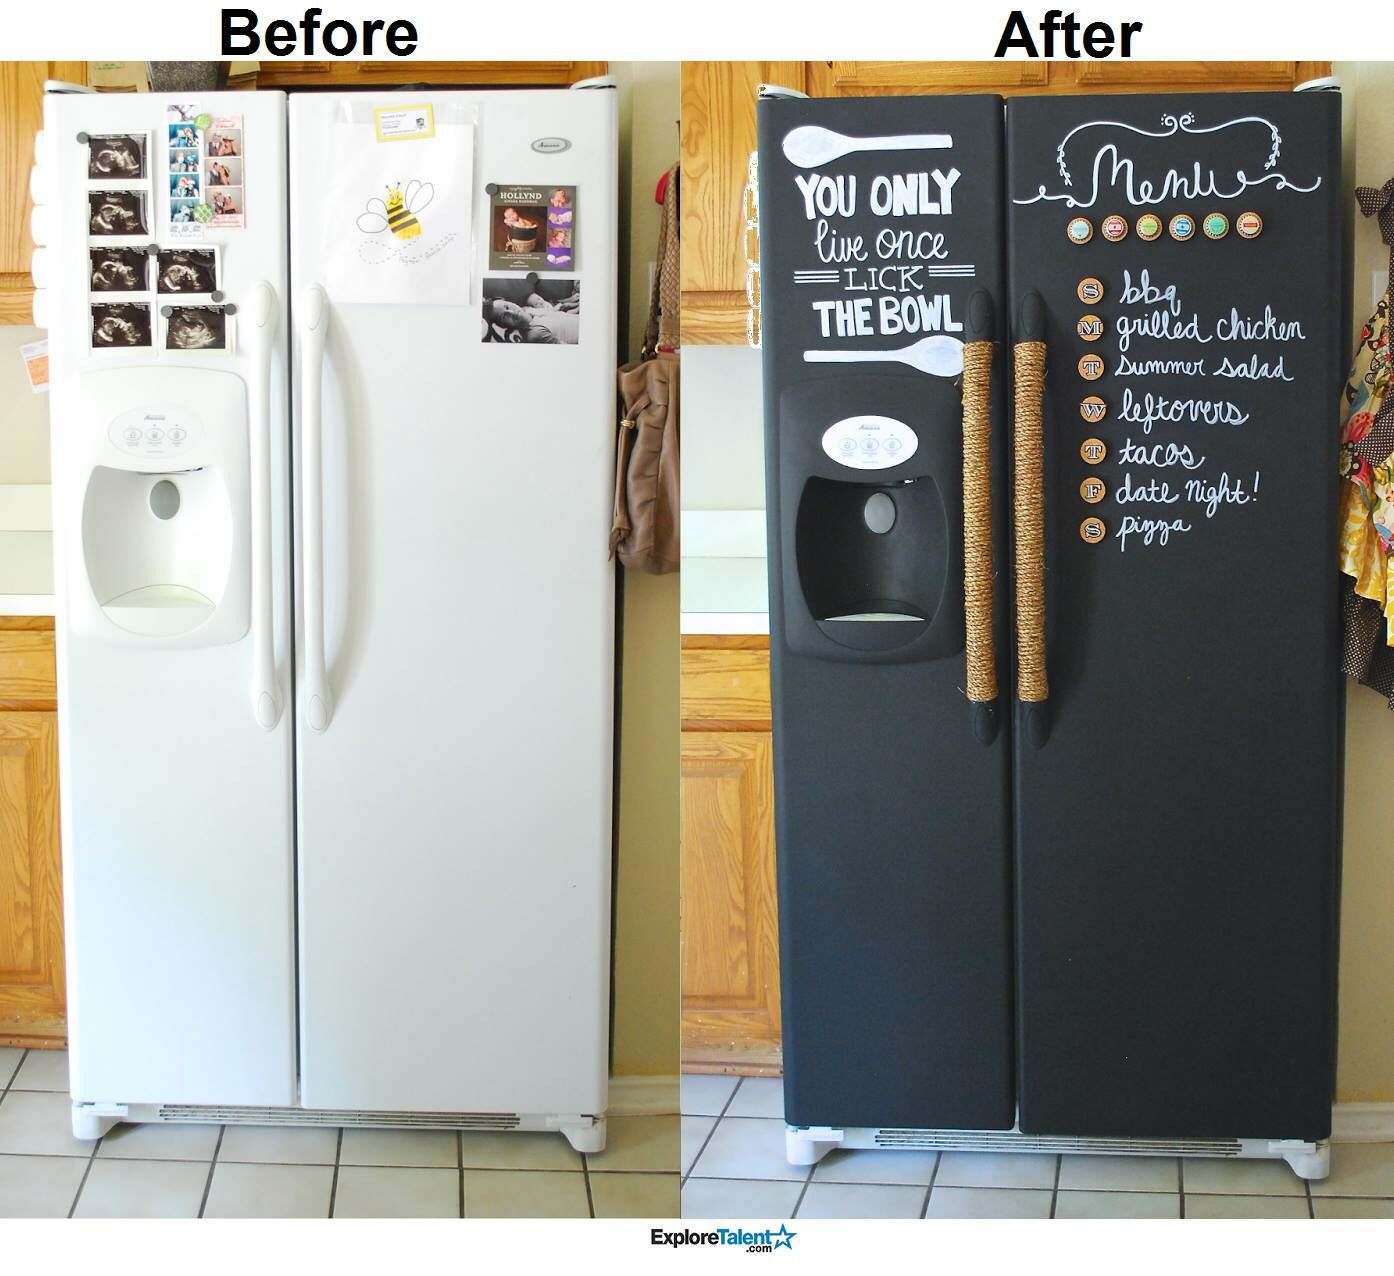 Diy Revamp Your Fridge Home Organization Hacks Fridge Makeover Painted Fridge